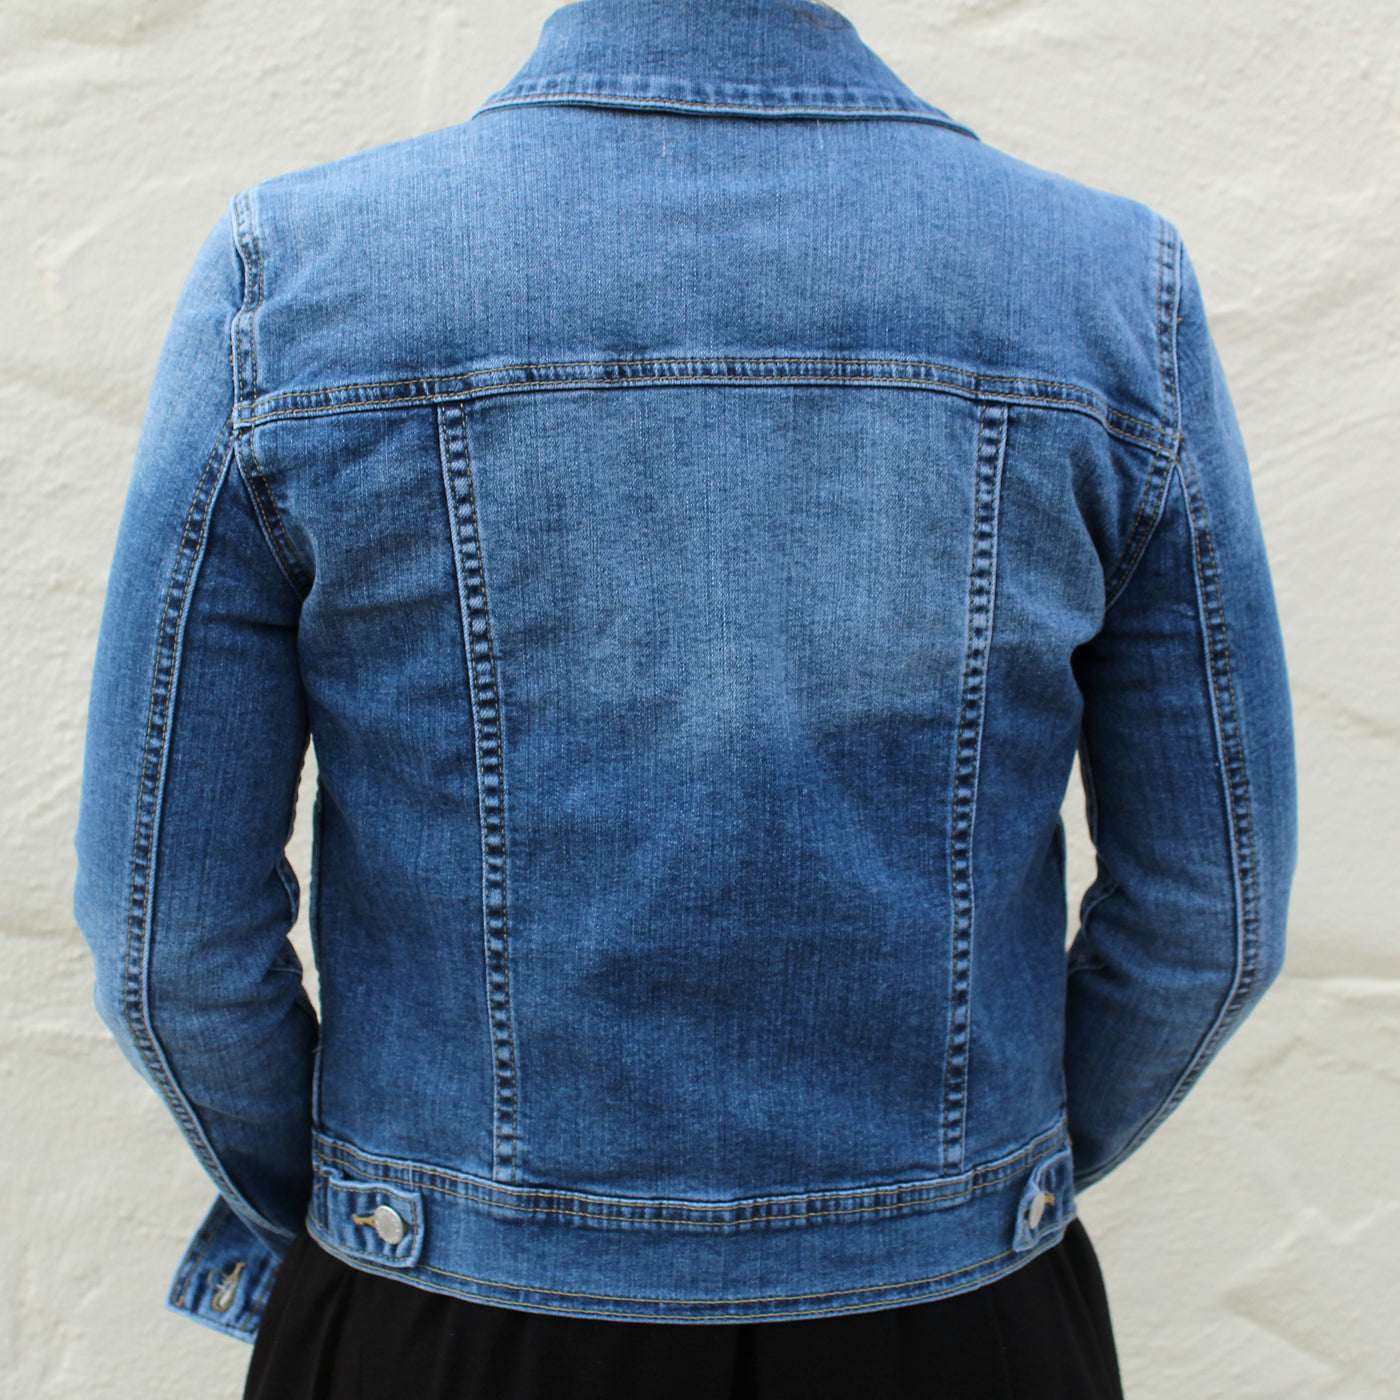 38a45350d455 Casey - Denim Jacket - The Mom Capsule